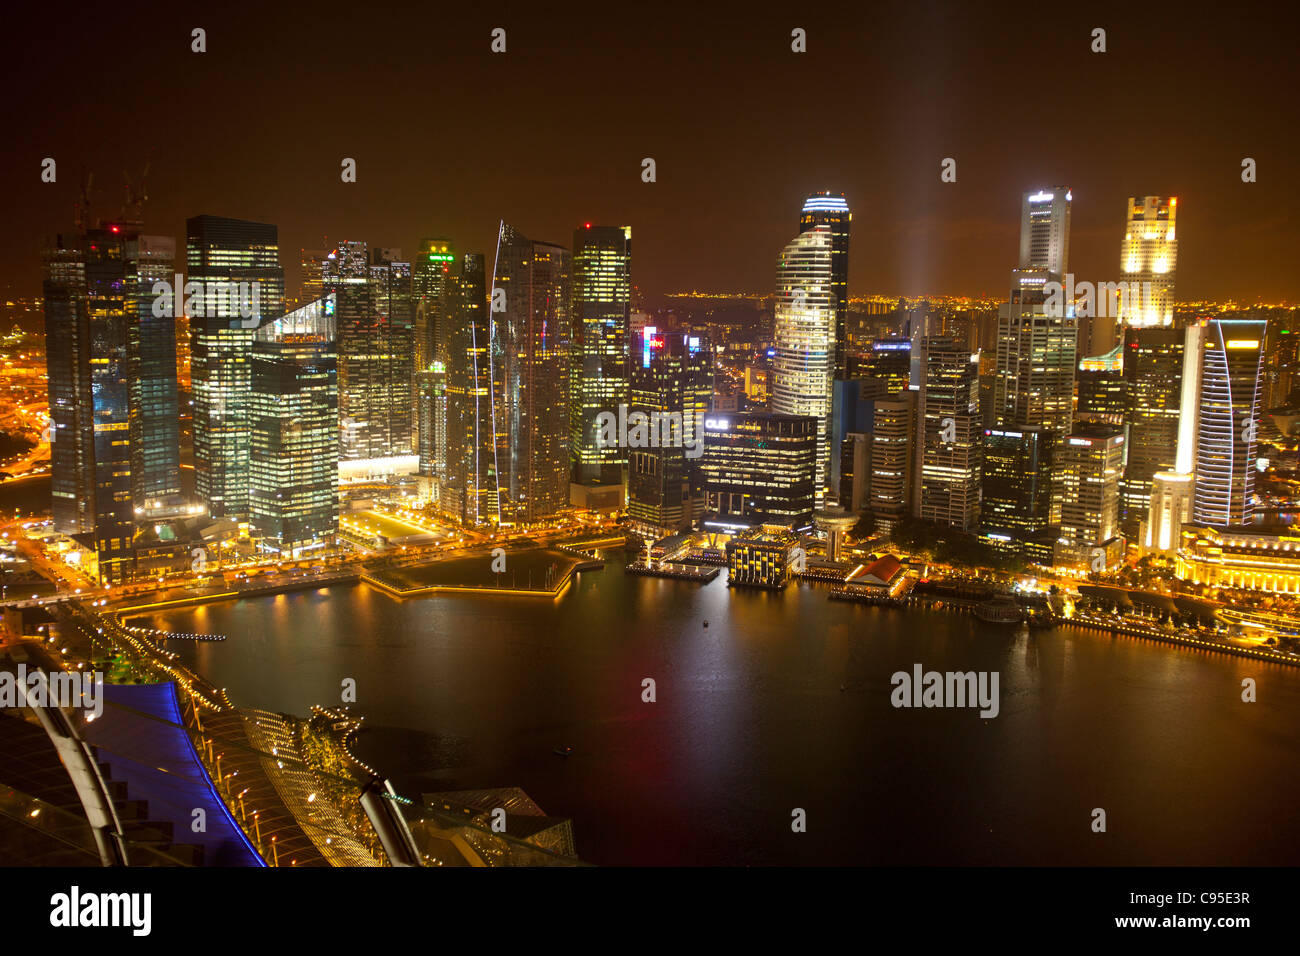 Skyline von Singapur Stockbild